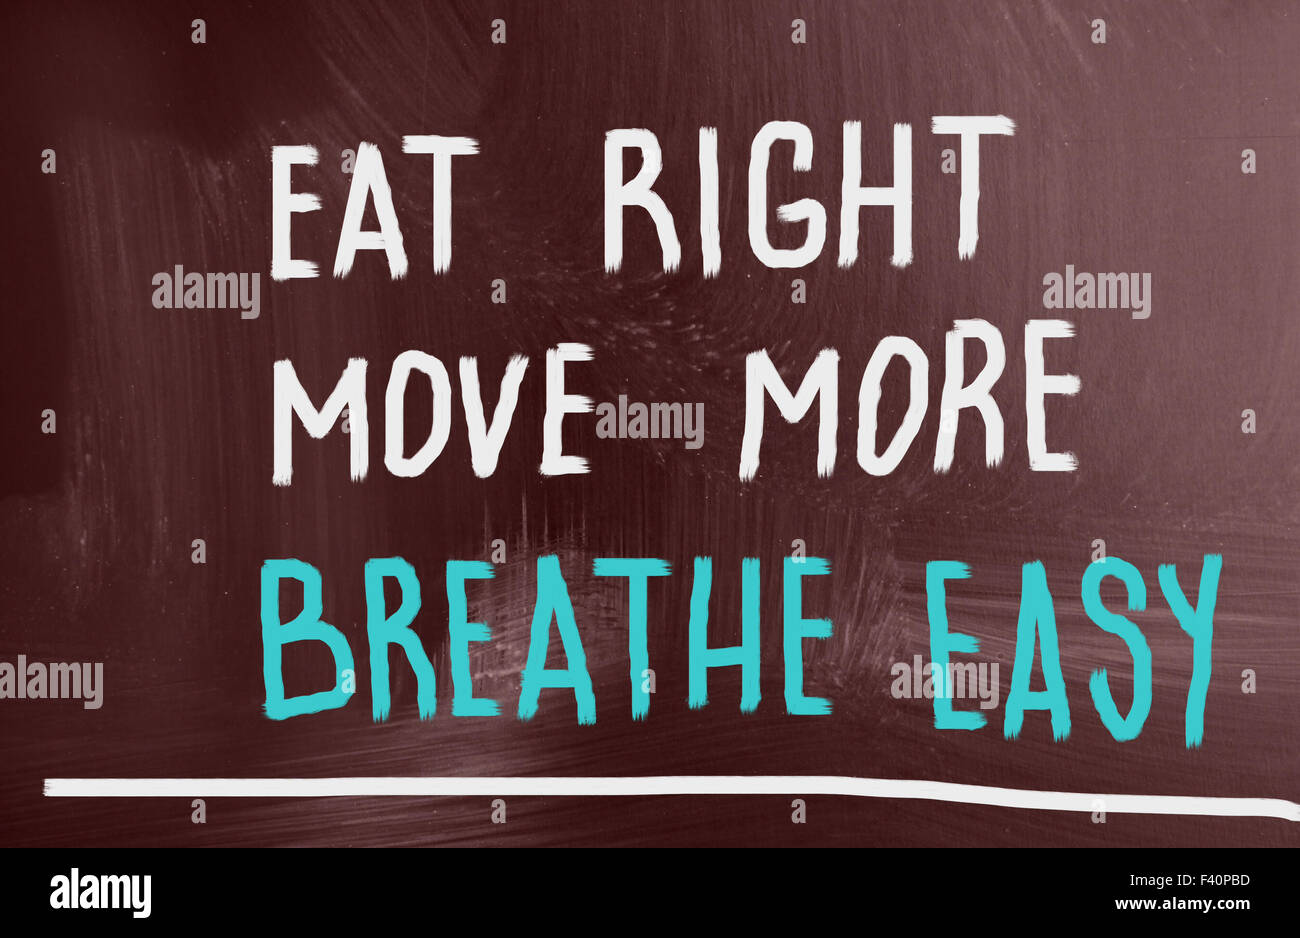 eat right, move more, breathe easy - Stock Image